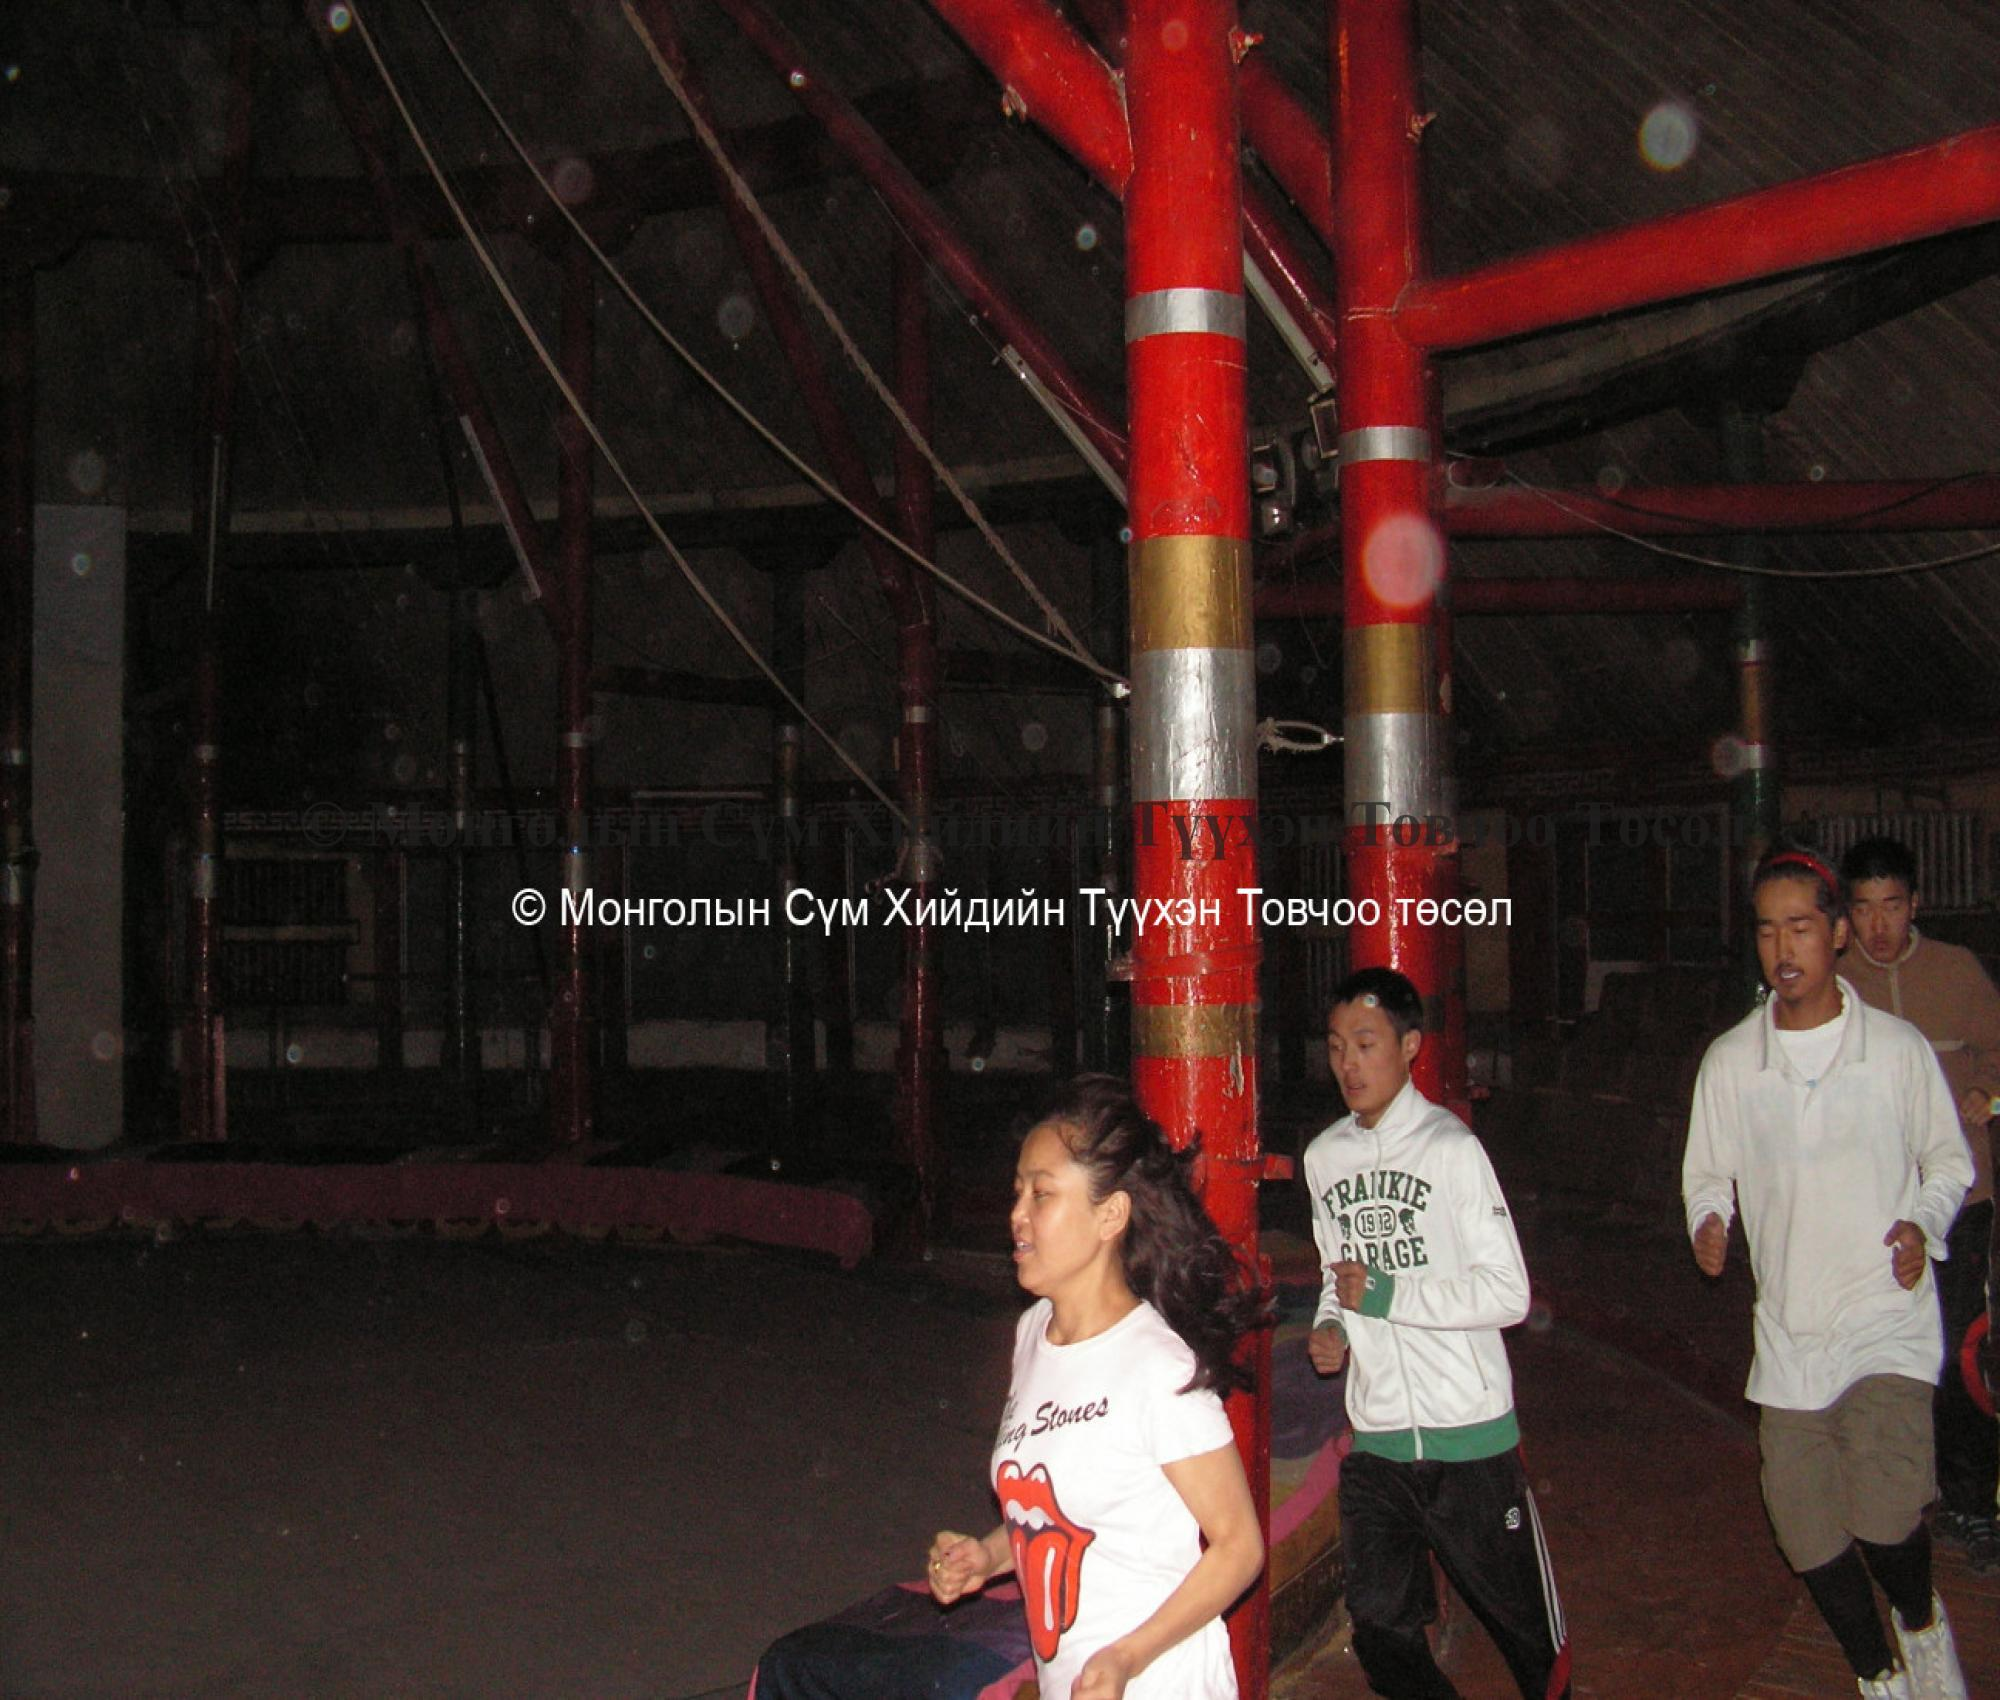 Training held in the Circus College 2007